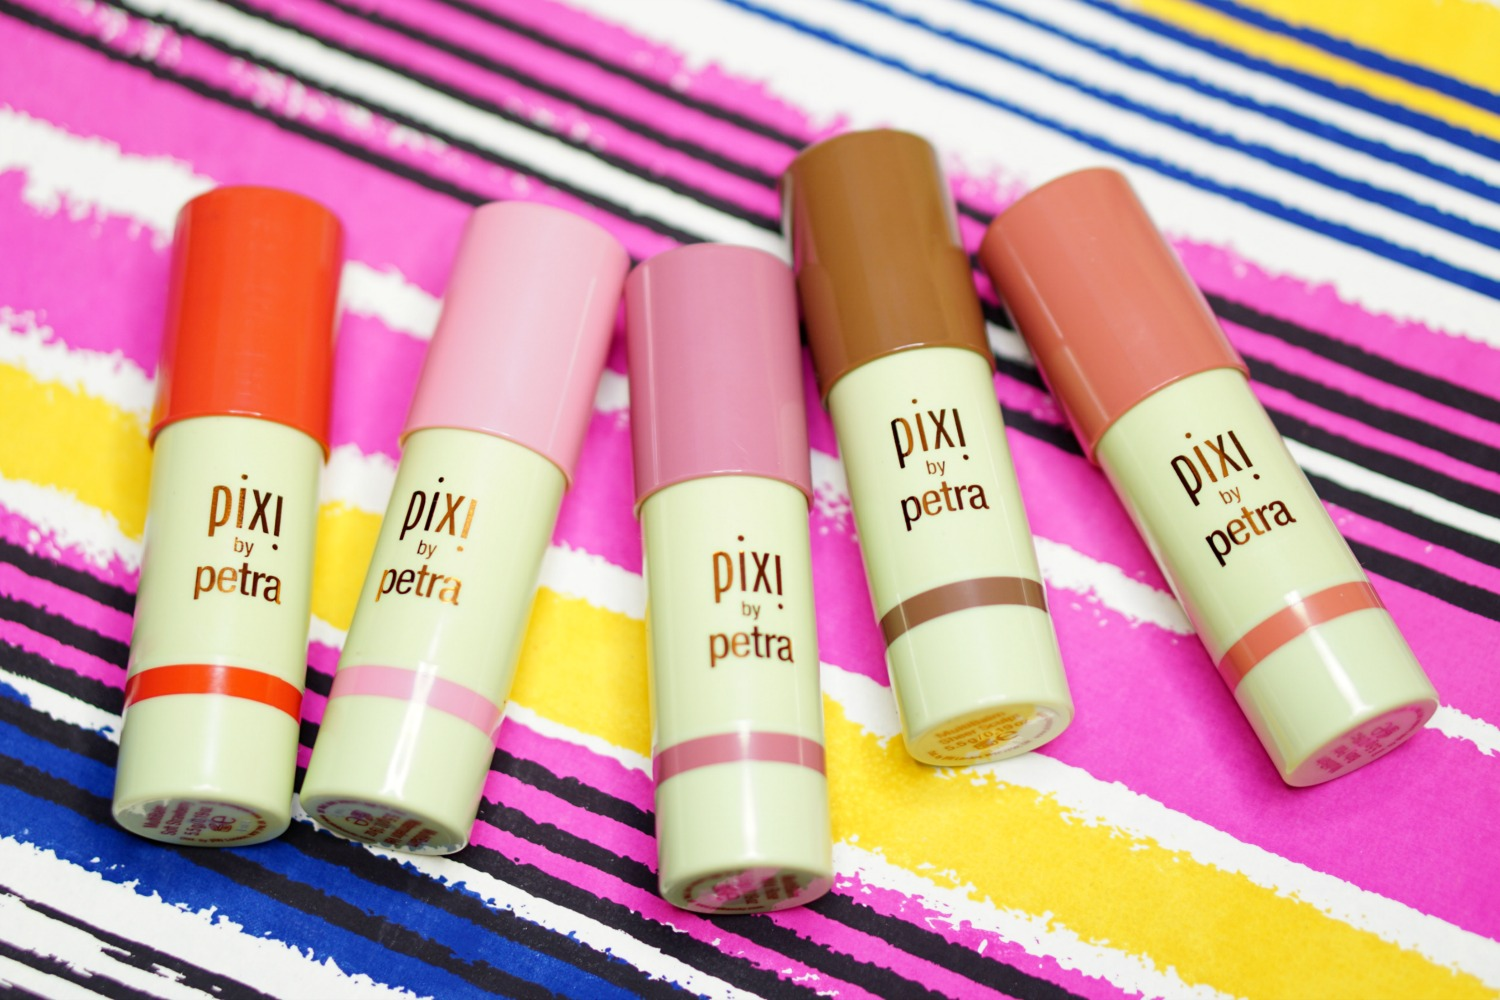 Pixi by Petra Multibalm Line Review